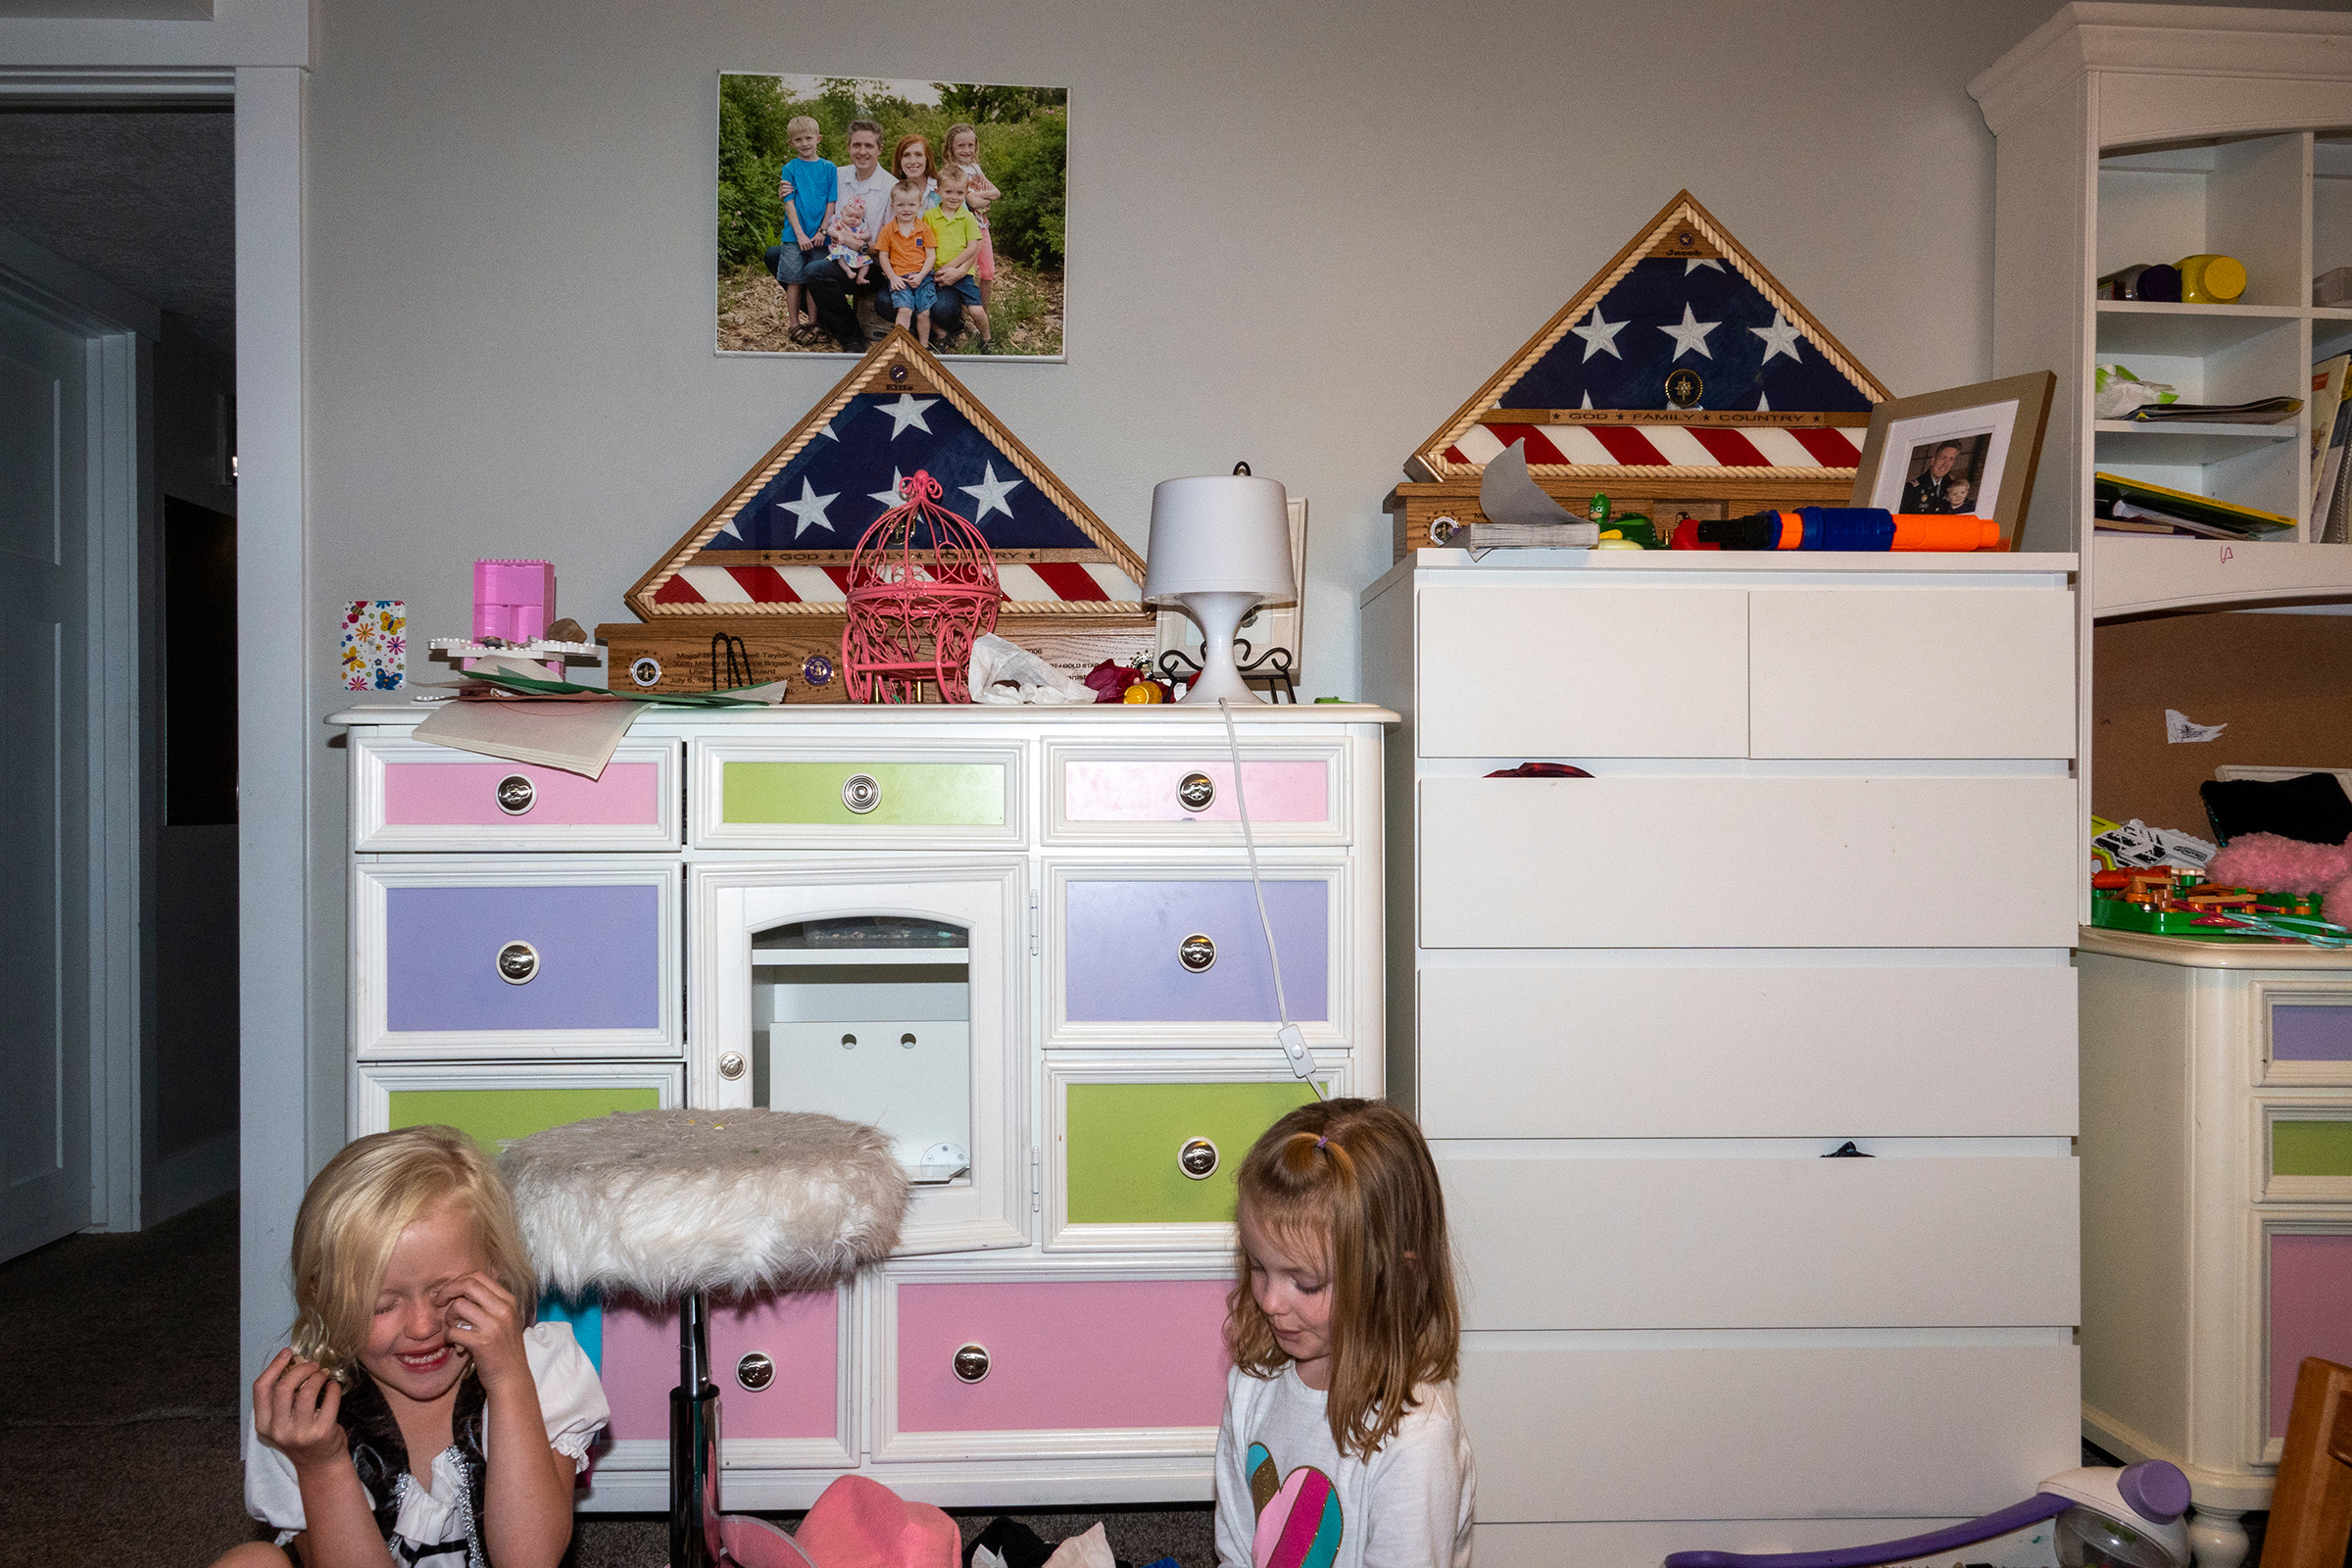 Ellie plays with cousin Vivian Pack in her bedroom. Resting on the dressers are two framed flags presented to each member of the family by the U.S. military.